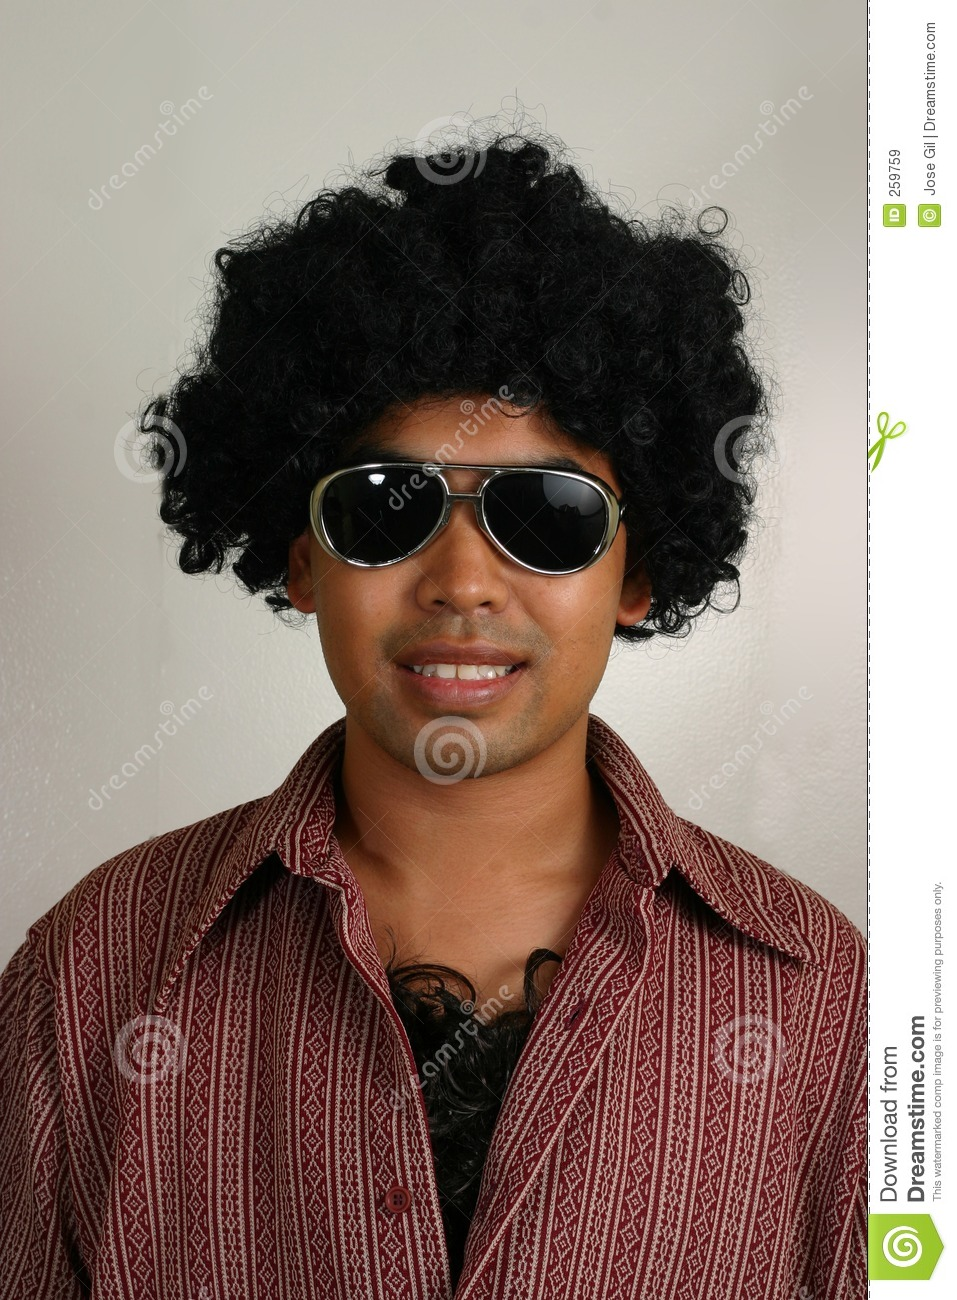 Dark complexion man ( Asian / Filipino / pass as Latino) in 70s afro, hairy  chest and sunglasses